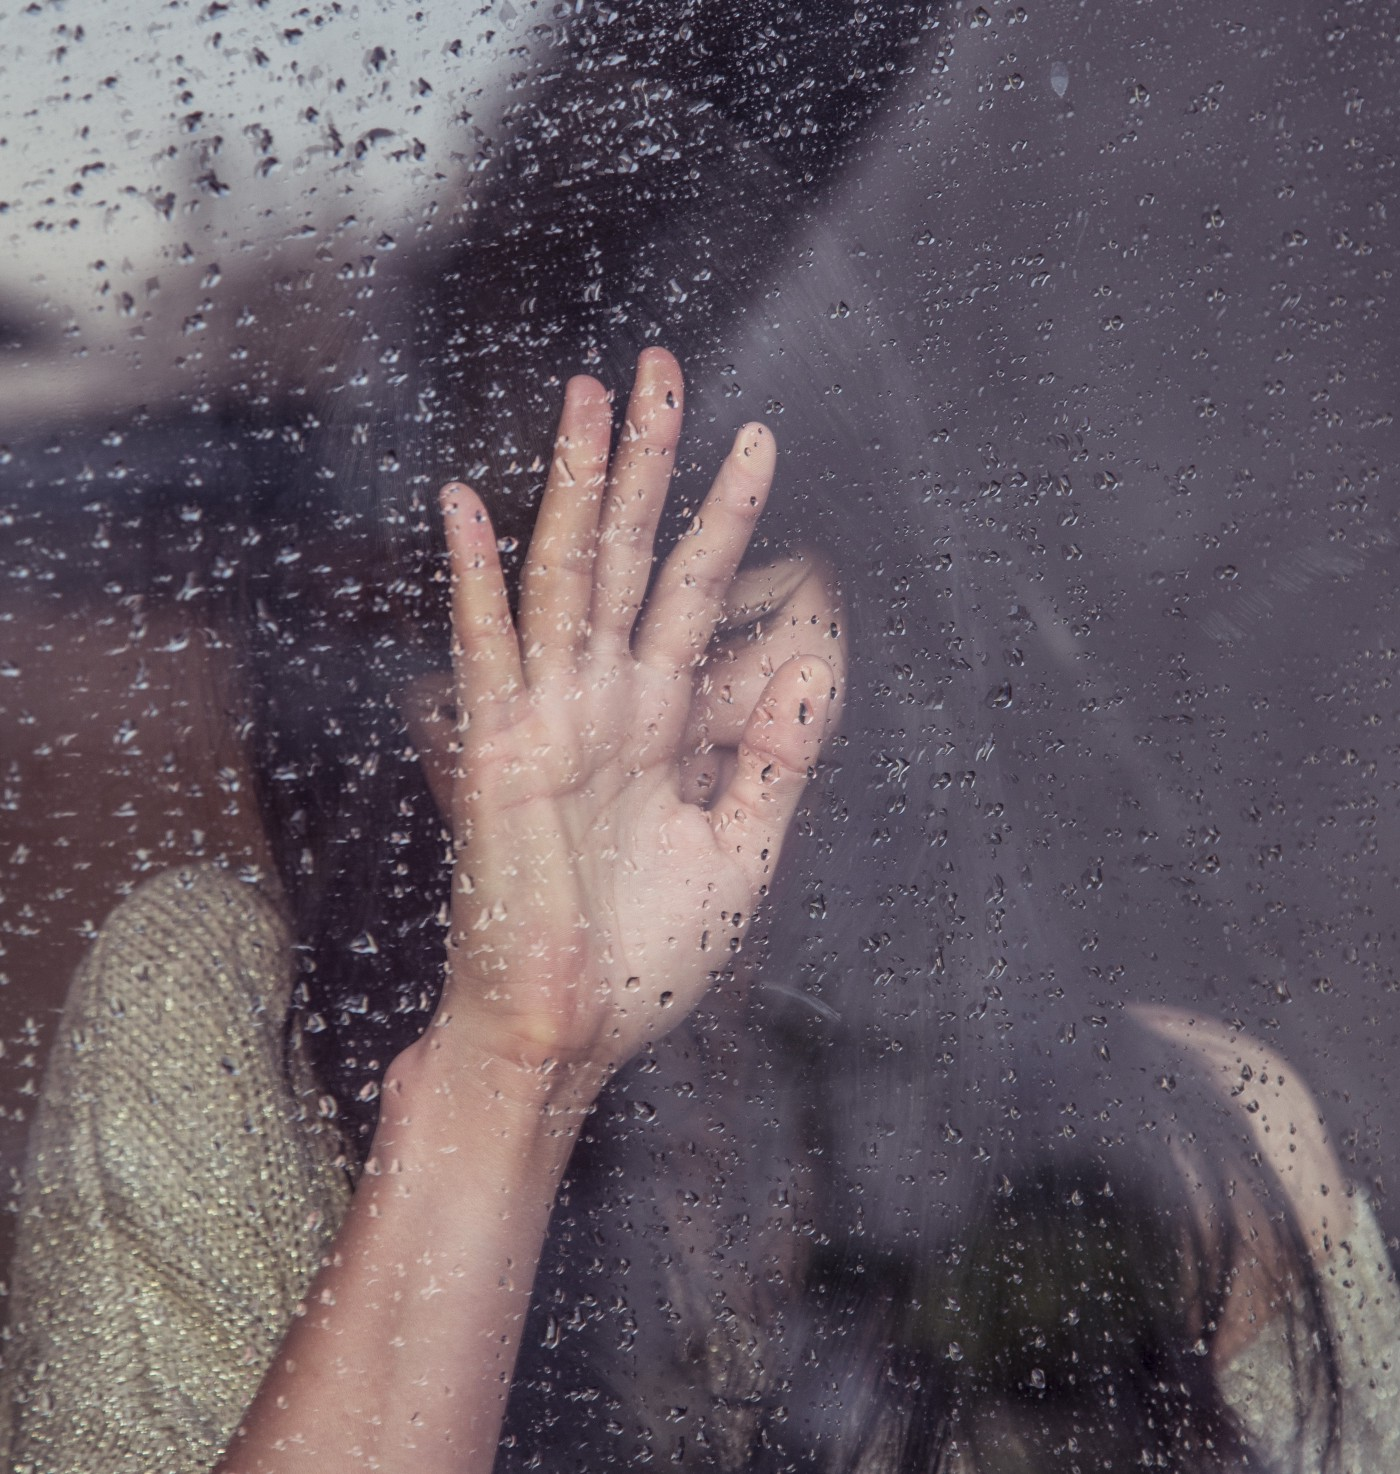 Distraught woman with hand covering part of her face pressed to a rainy window.